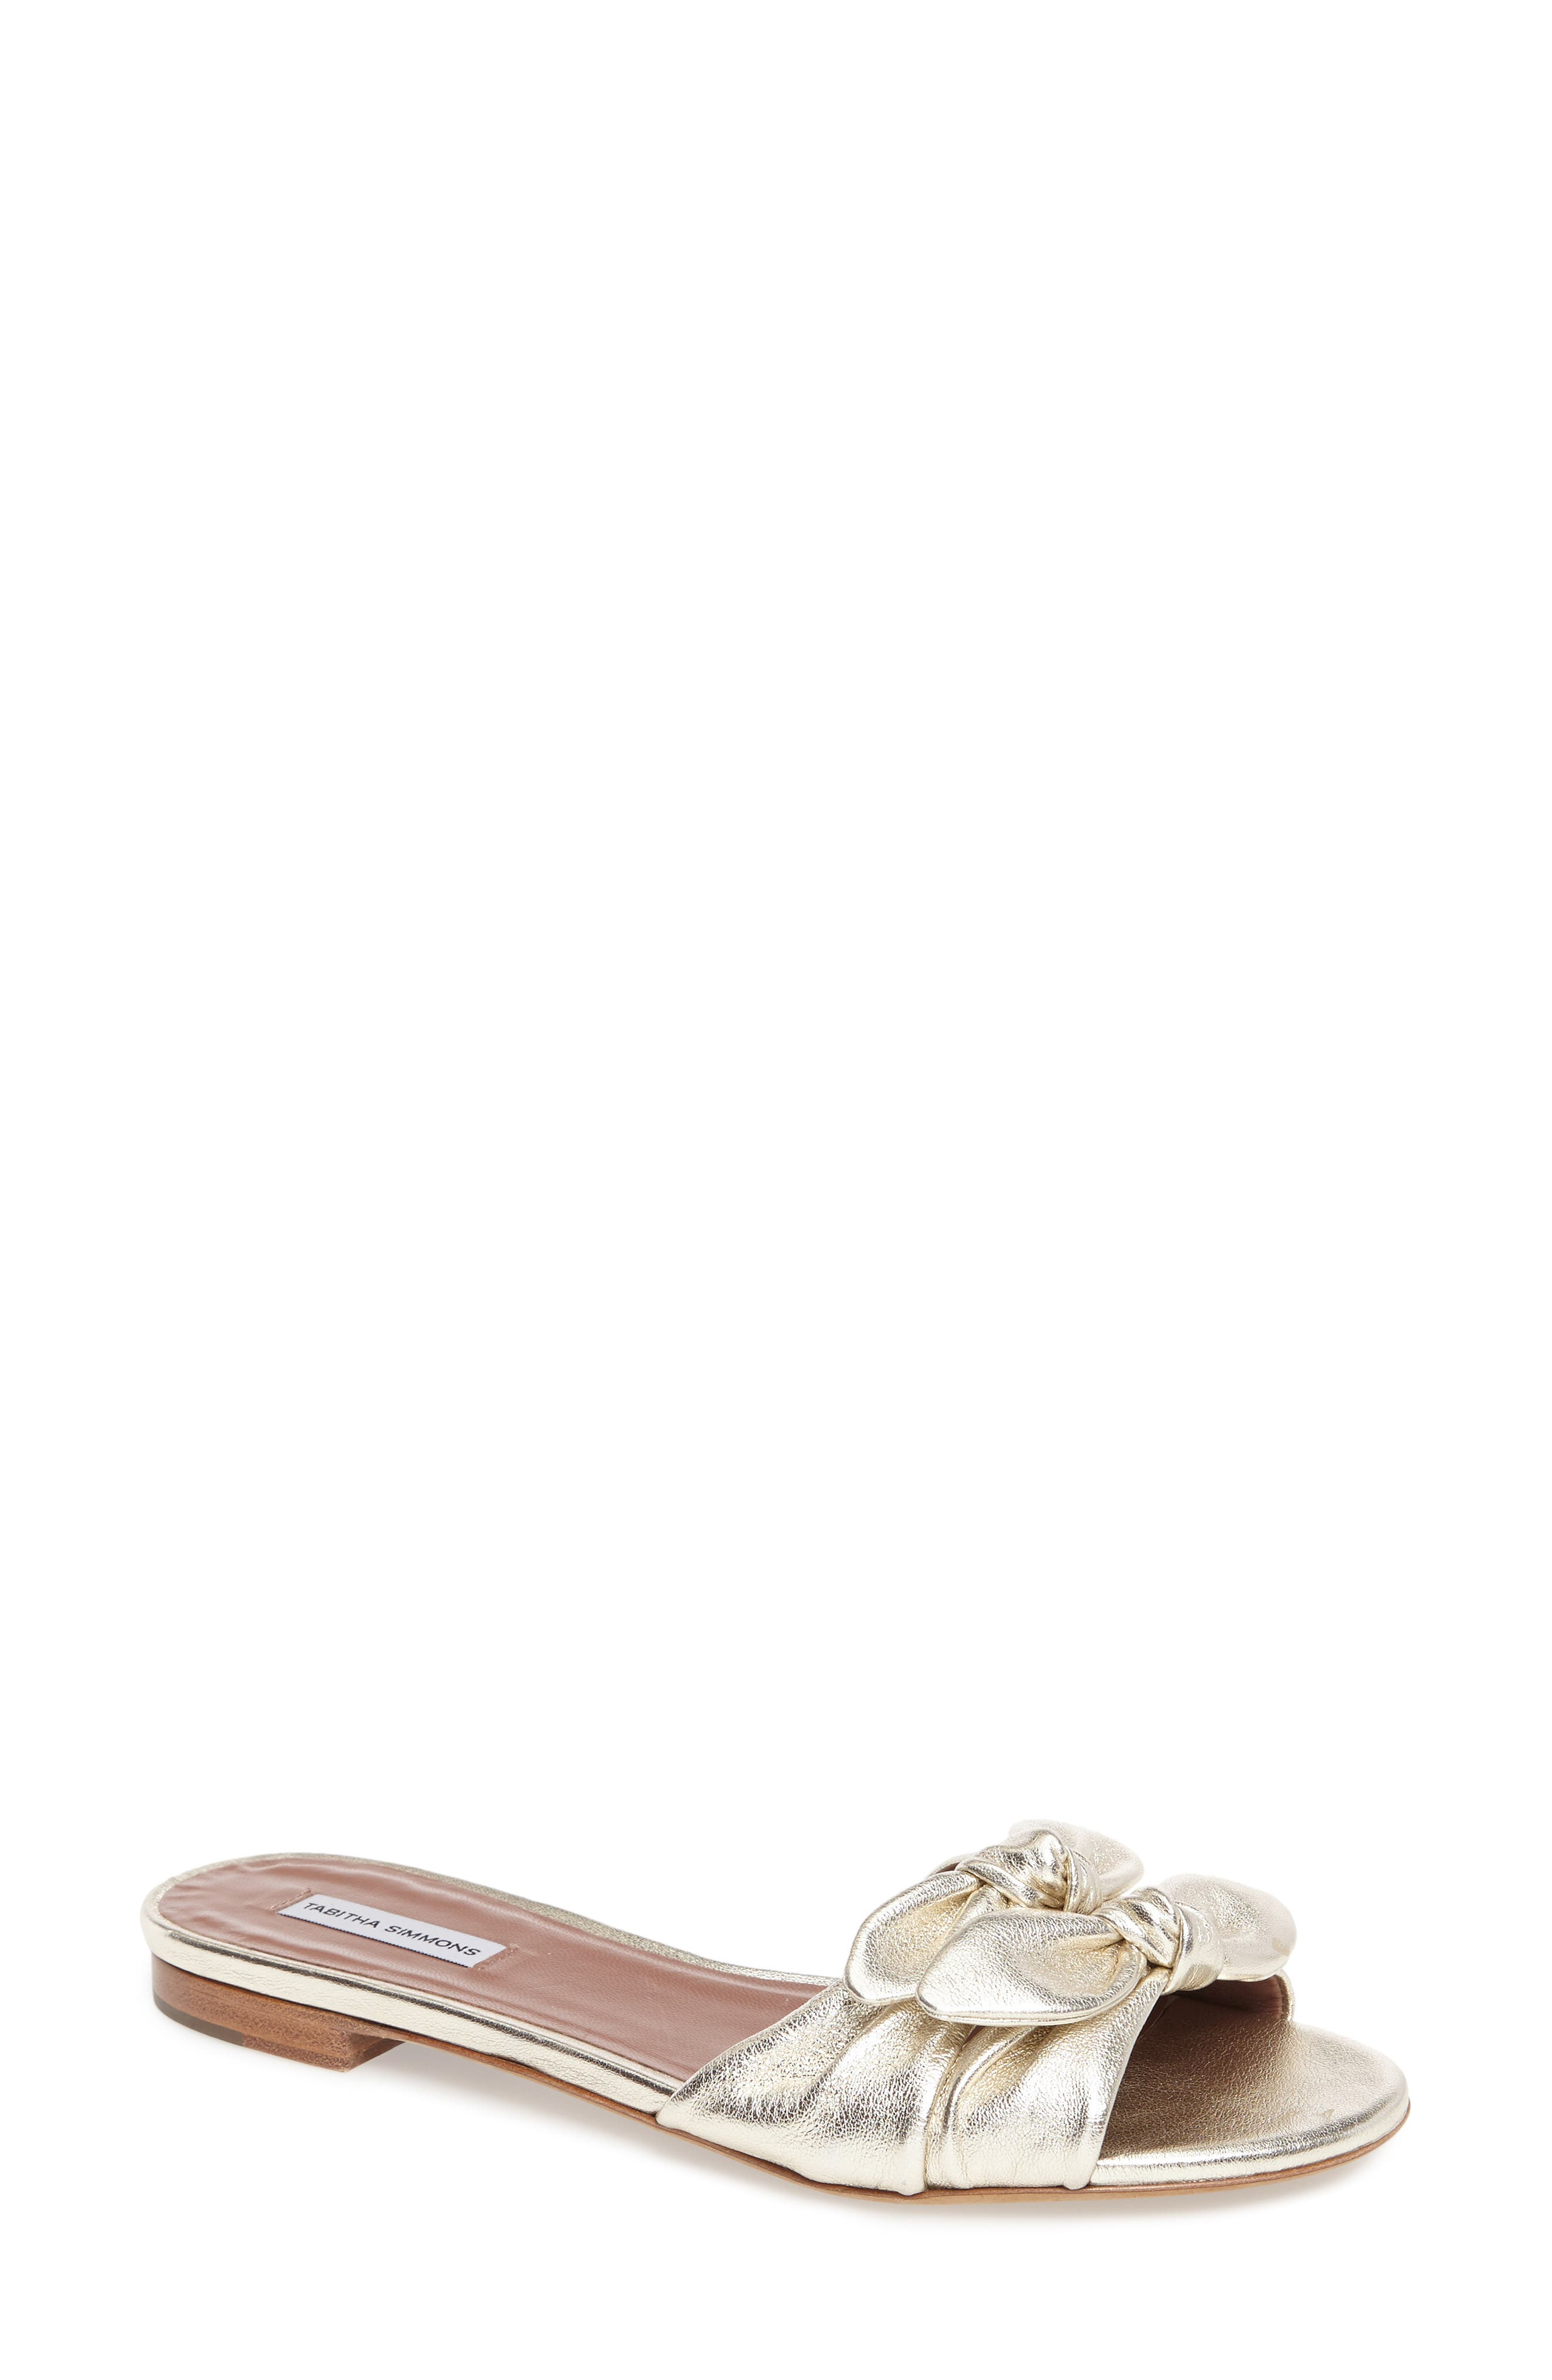 Cleo Knotted Bow Slide Sandal,                         Main,                         color, 040